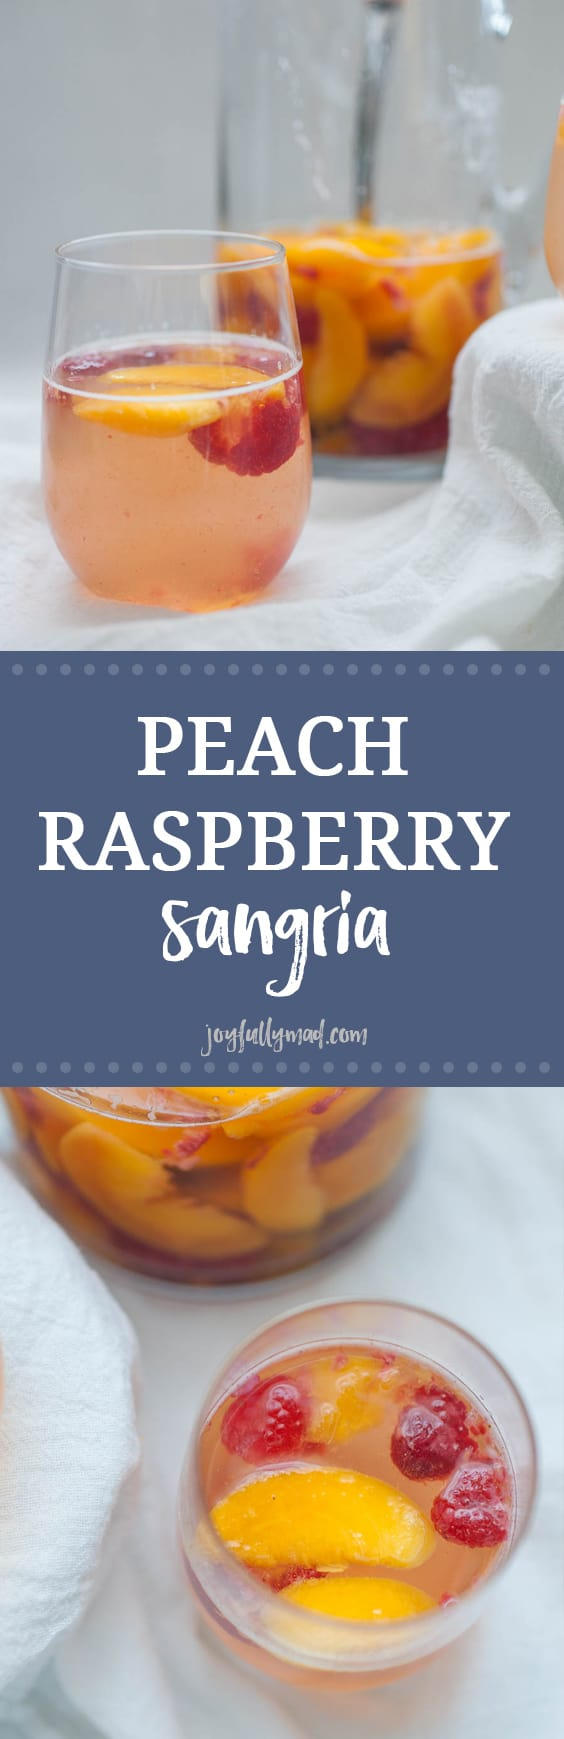 This Peach Raspberry Sangria is going to be the hit of all of your summer get togethers! A simple sangria recipe with peaches, raspberry, Moscato wine and a quick peach simple syrup makes this cocktail irresistible in the summer.